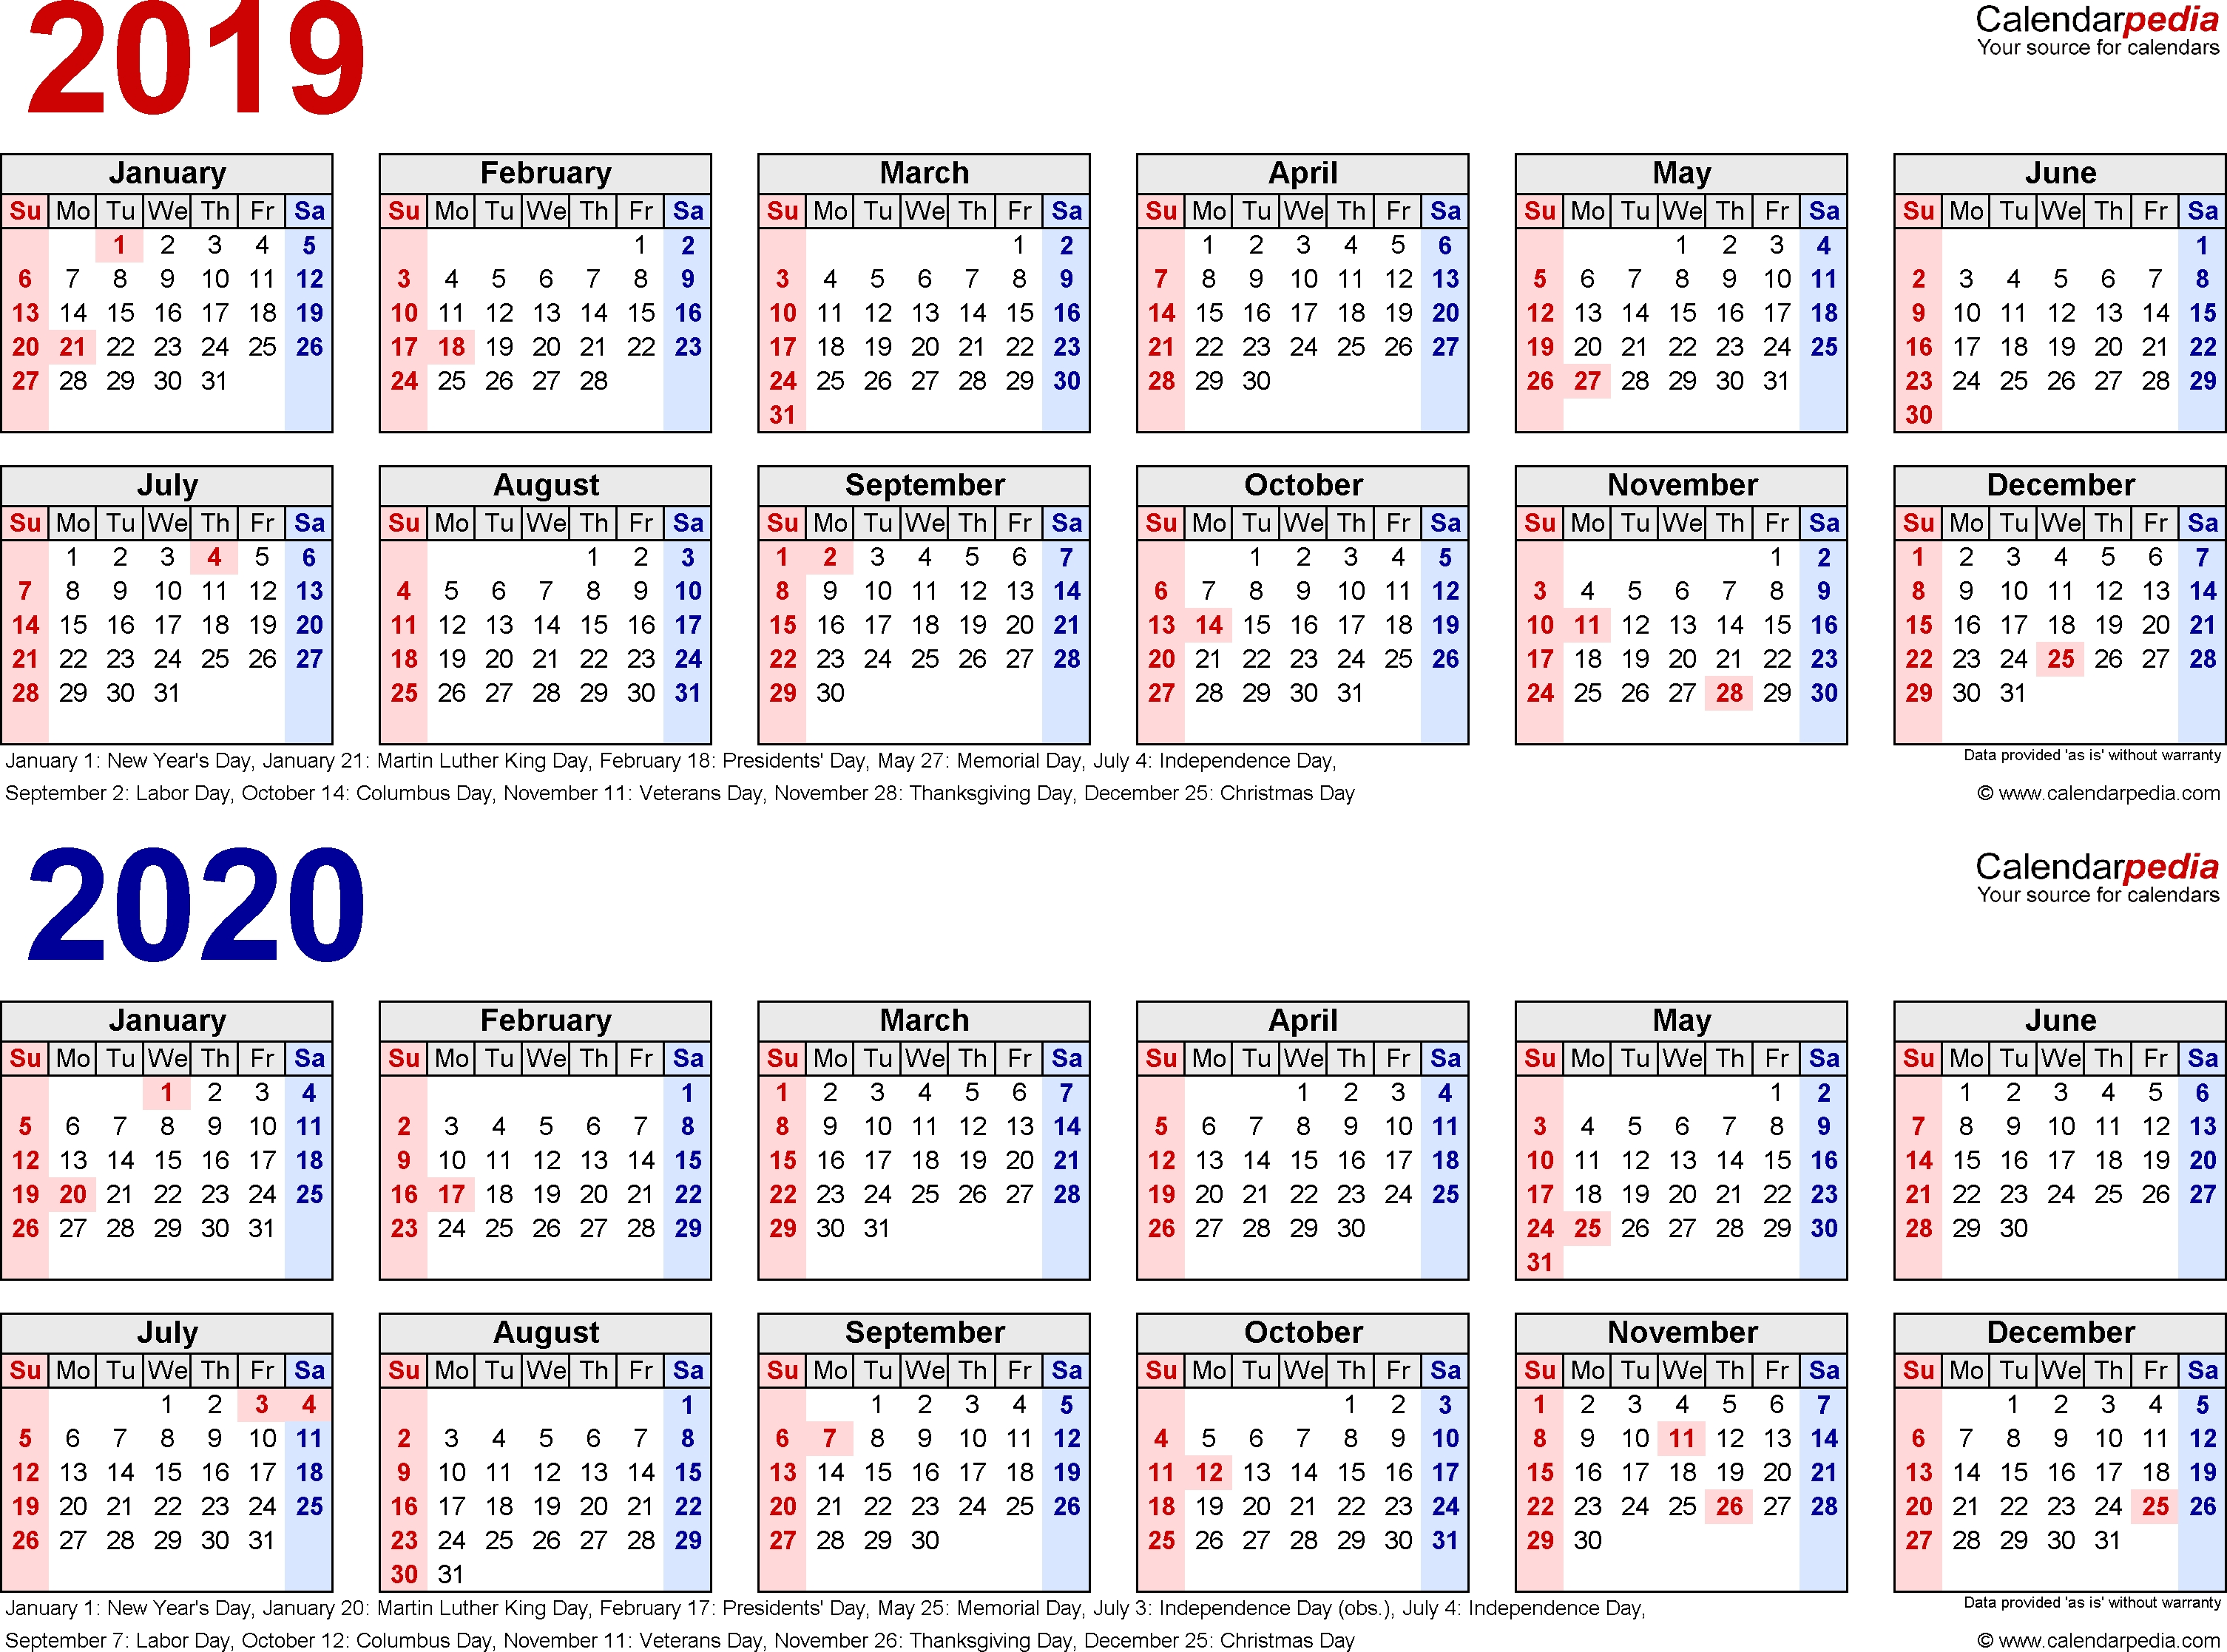 2019-2020 Calendar - Free Printable Two-Year Word Calendars intended for Free Editable Calander 2019-2020 Start On Sunday